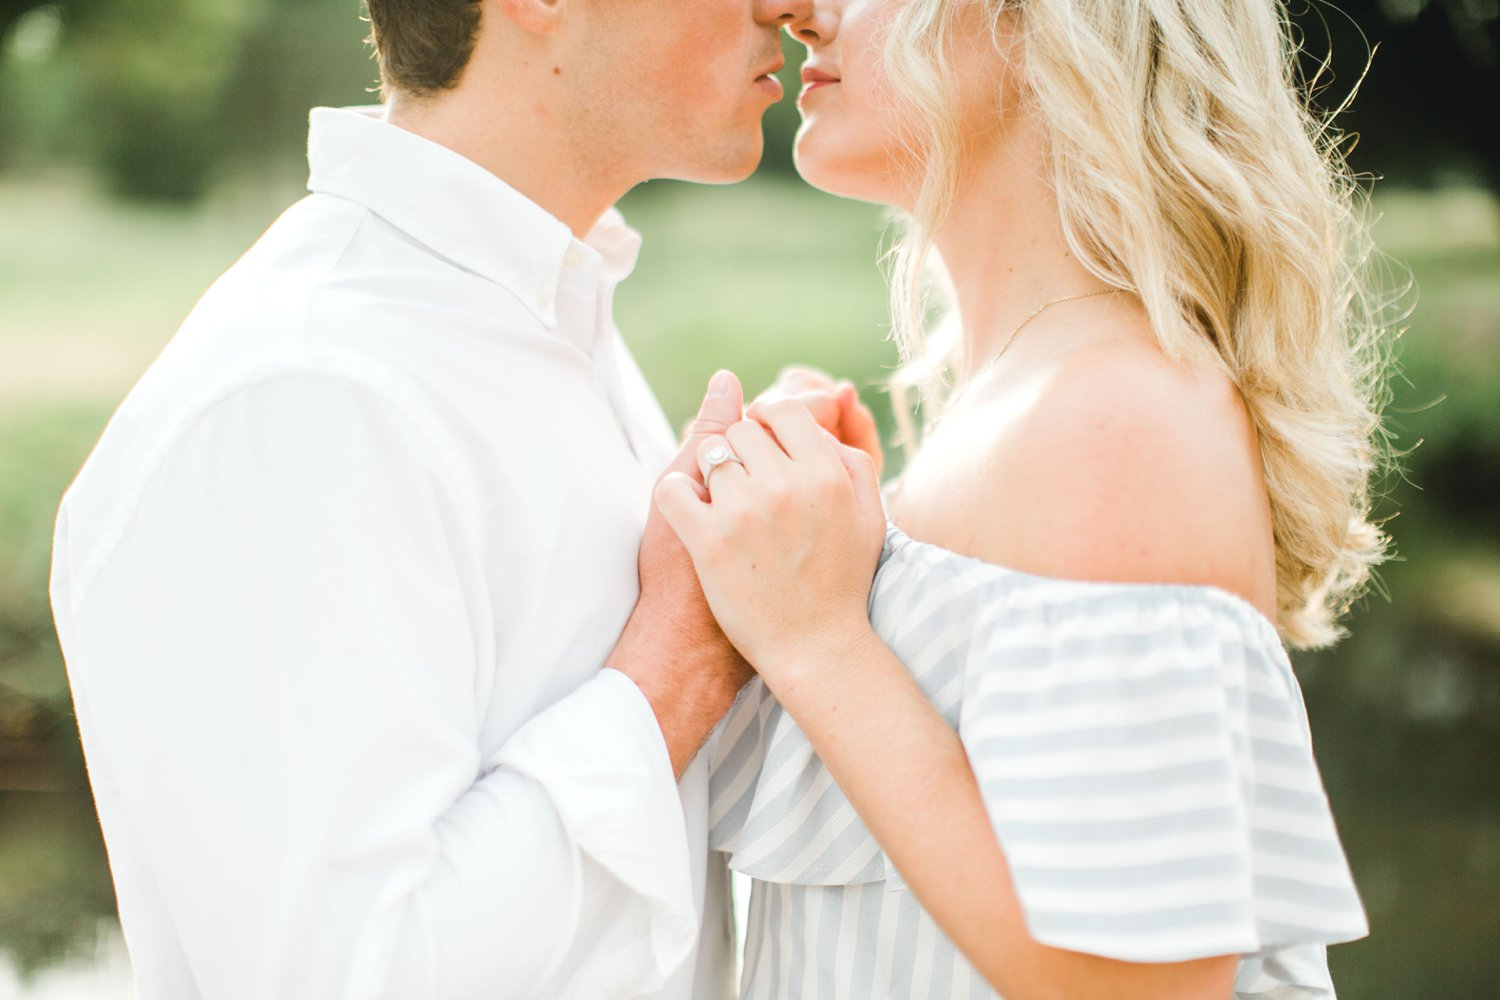 Allison_and_Clay_Smart_Engagements_ALLEEJ_Lubbock_Photographer_0021.jpg